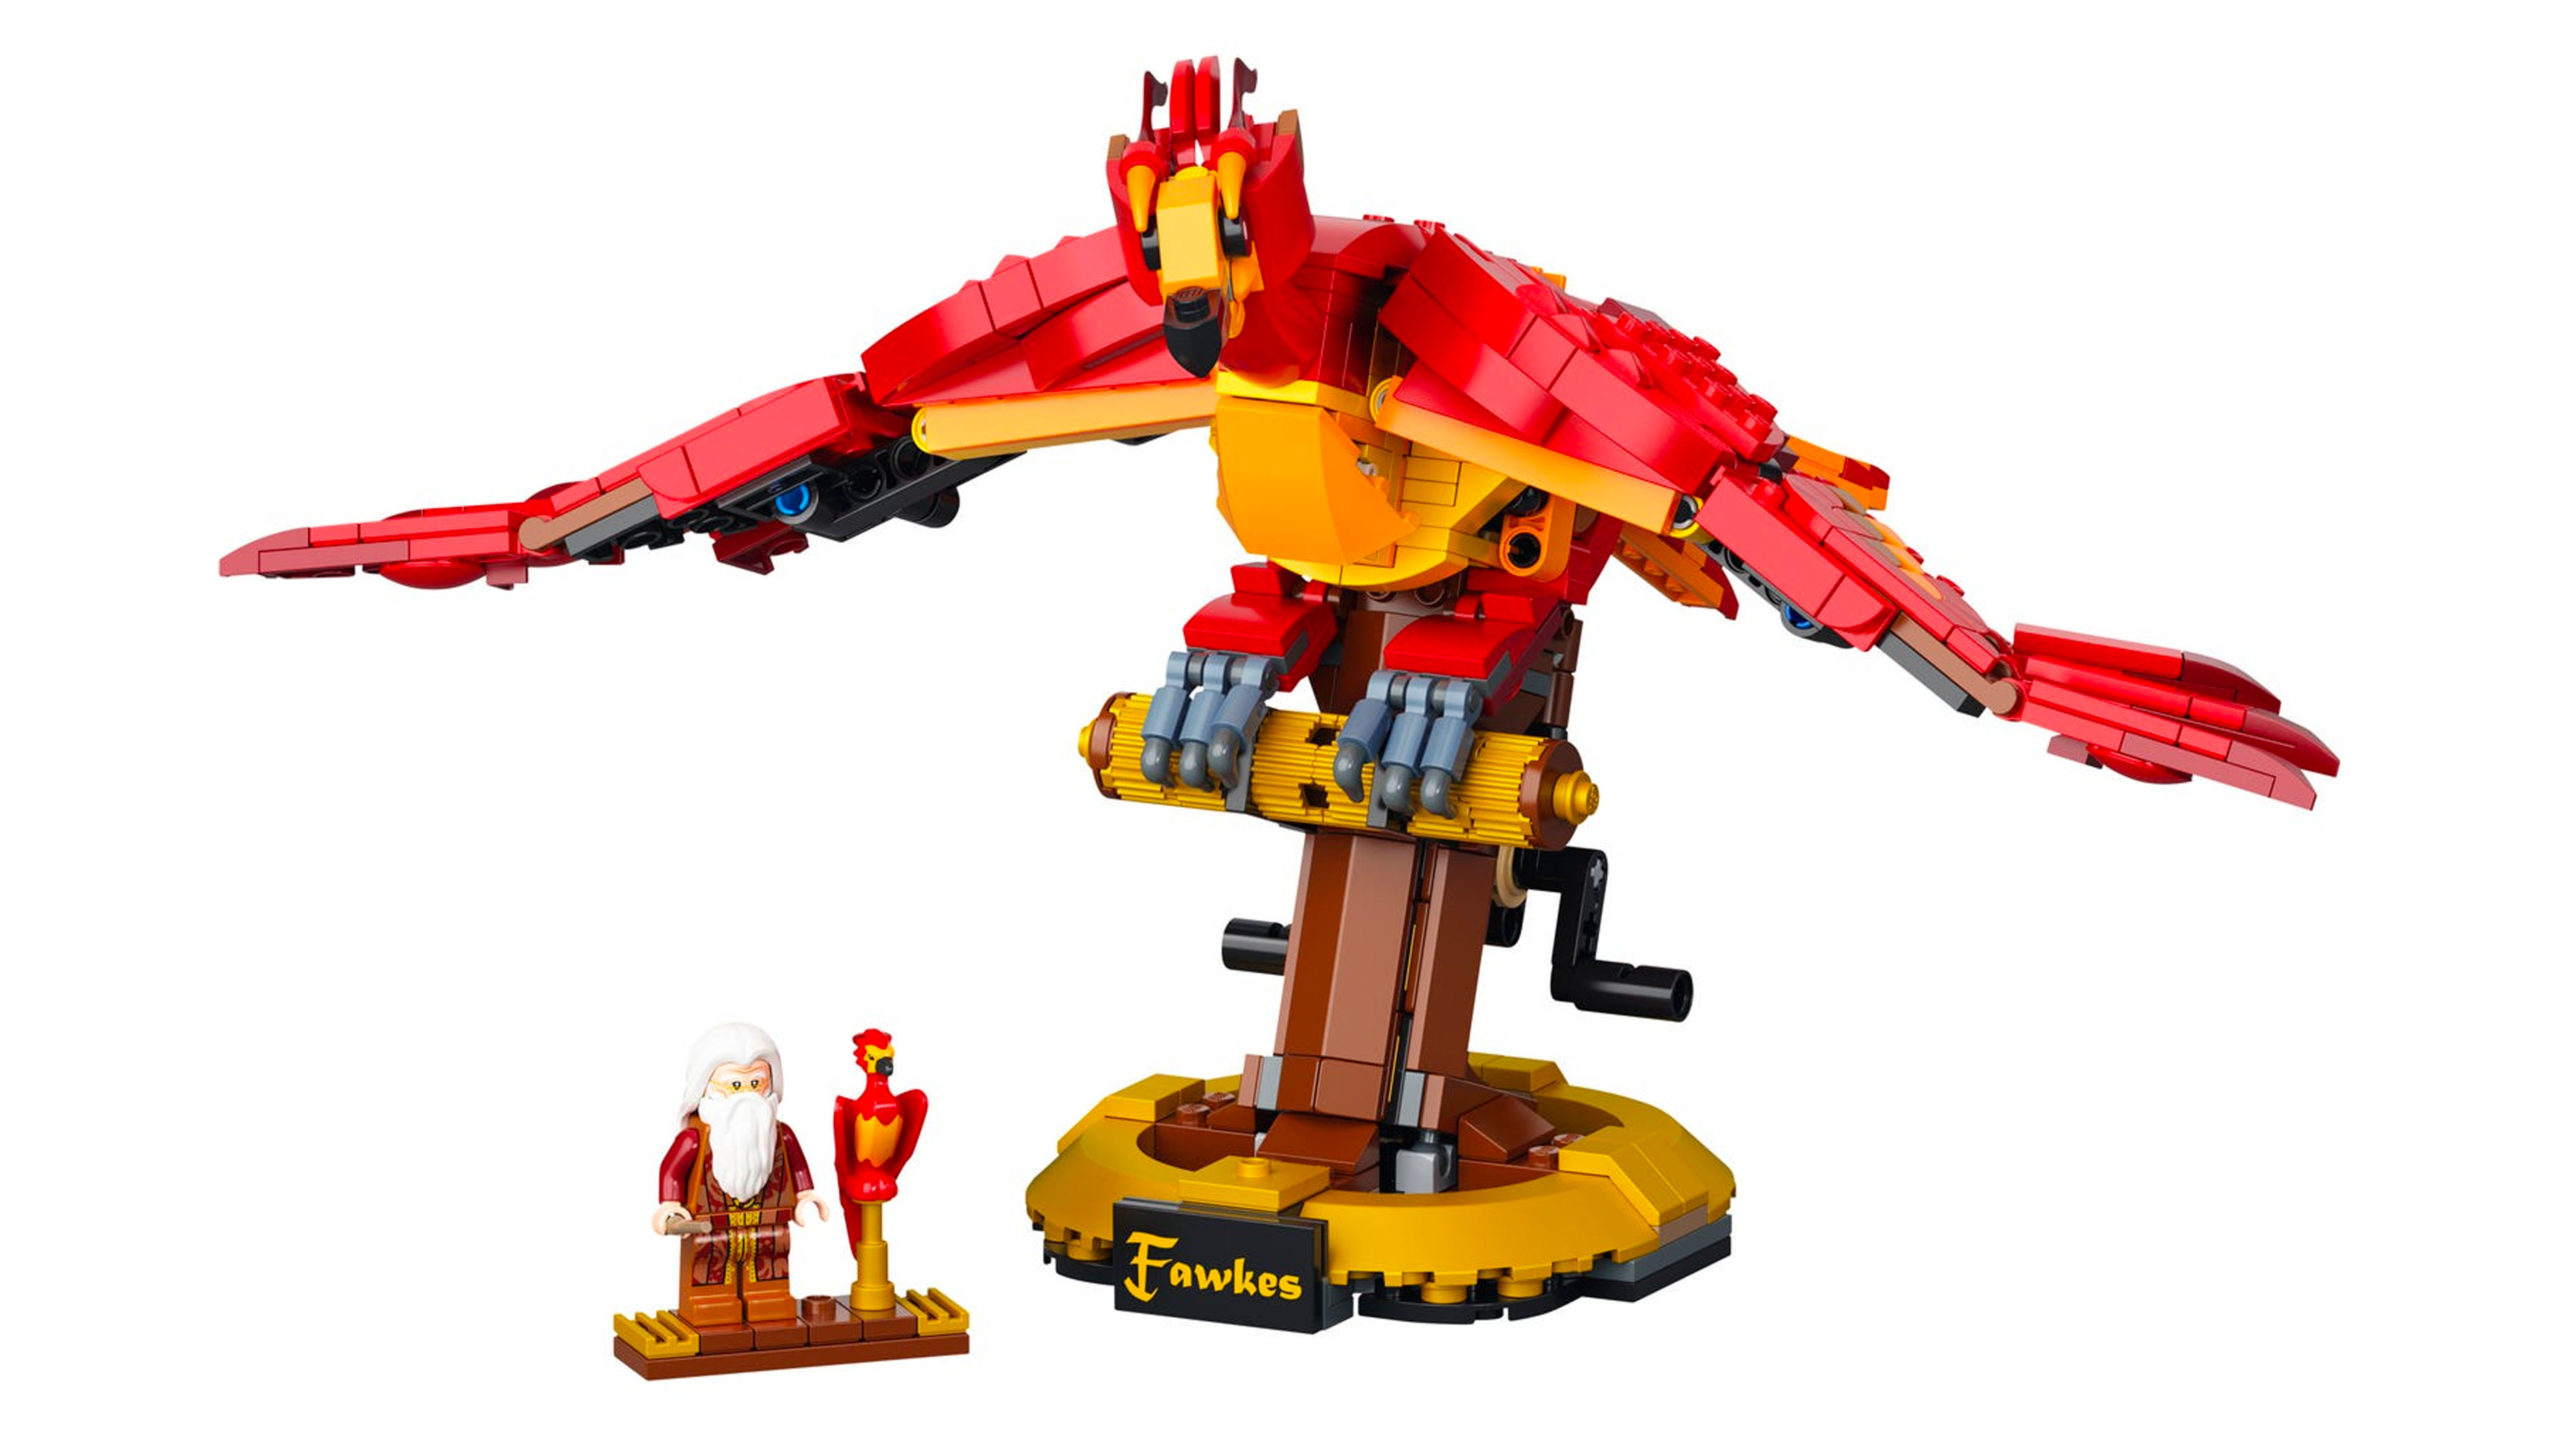 LEGO Harry Potter Fawkes